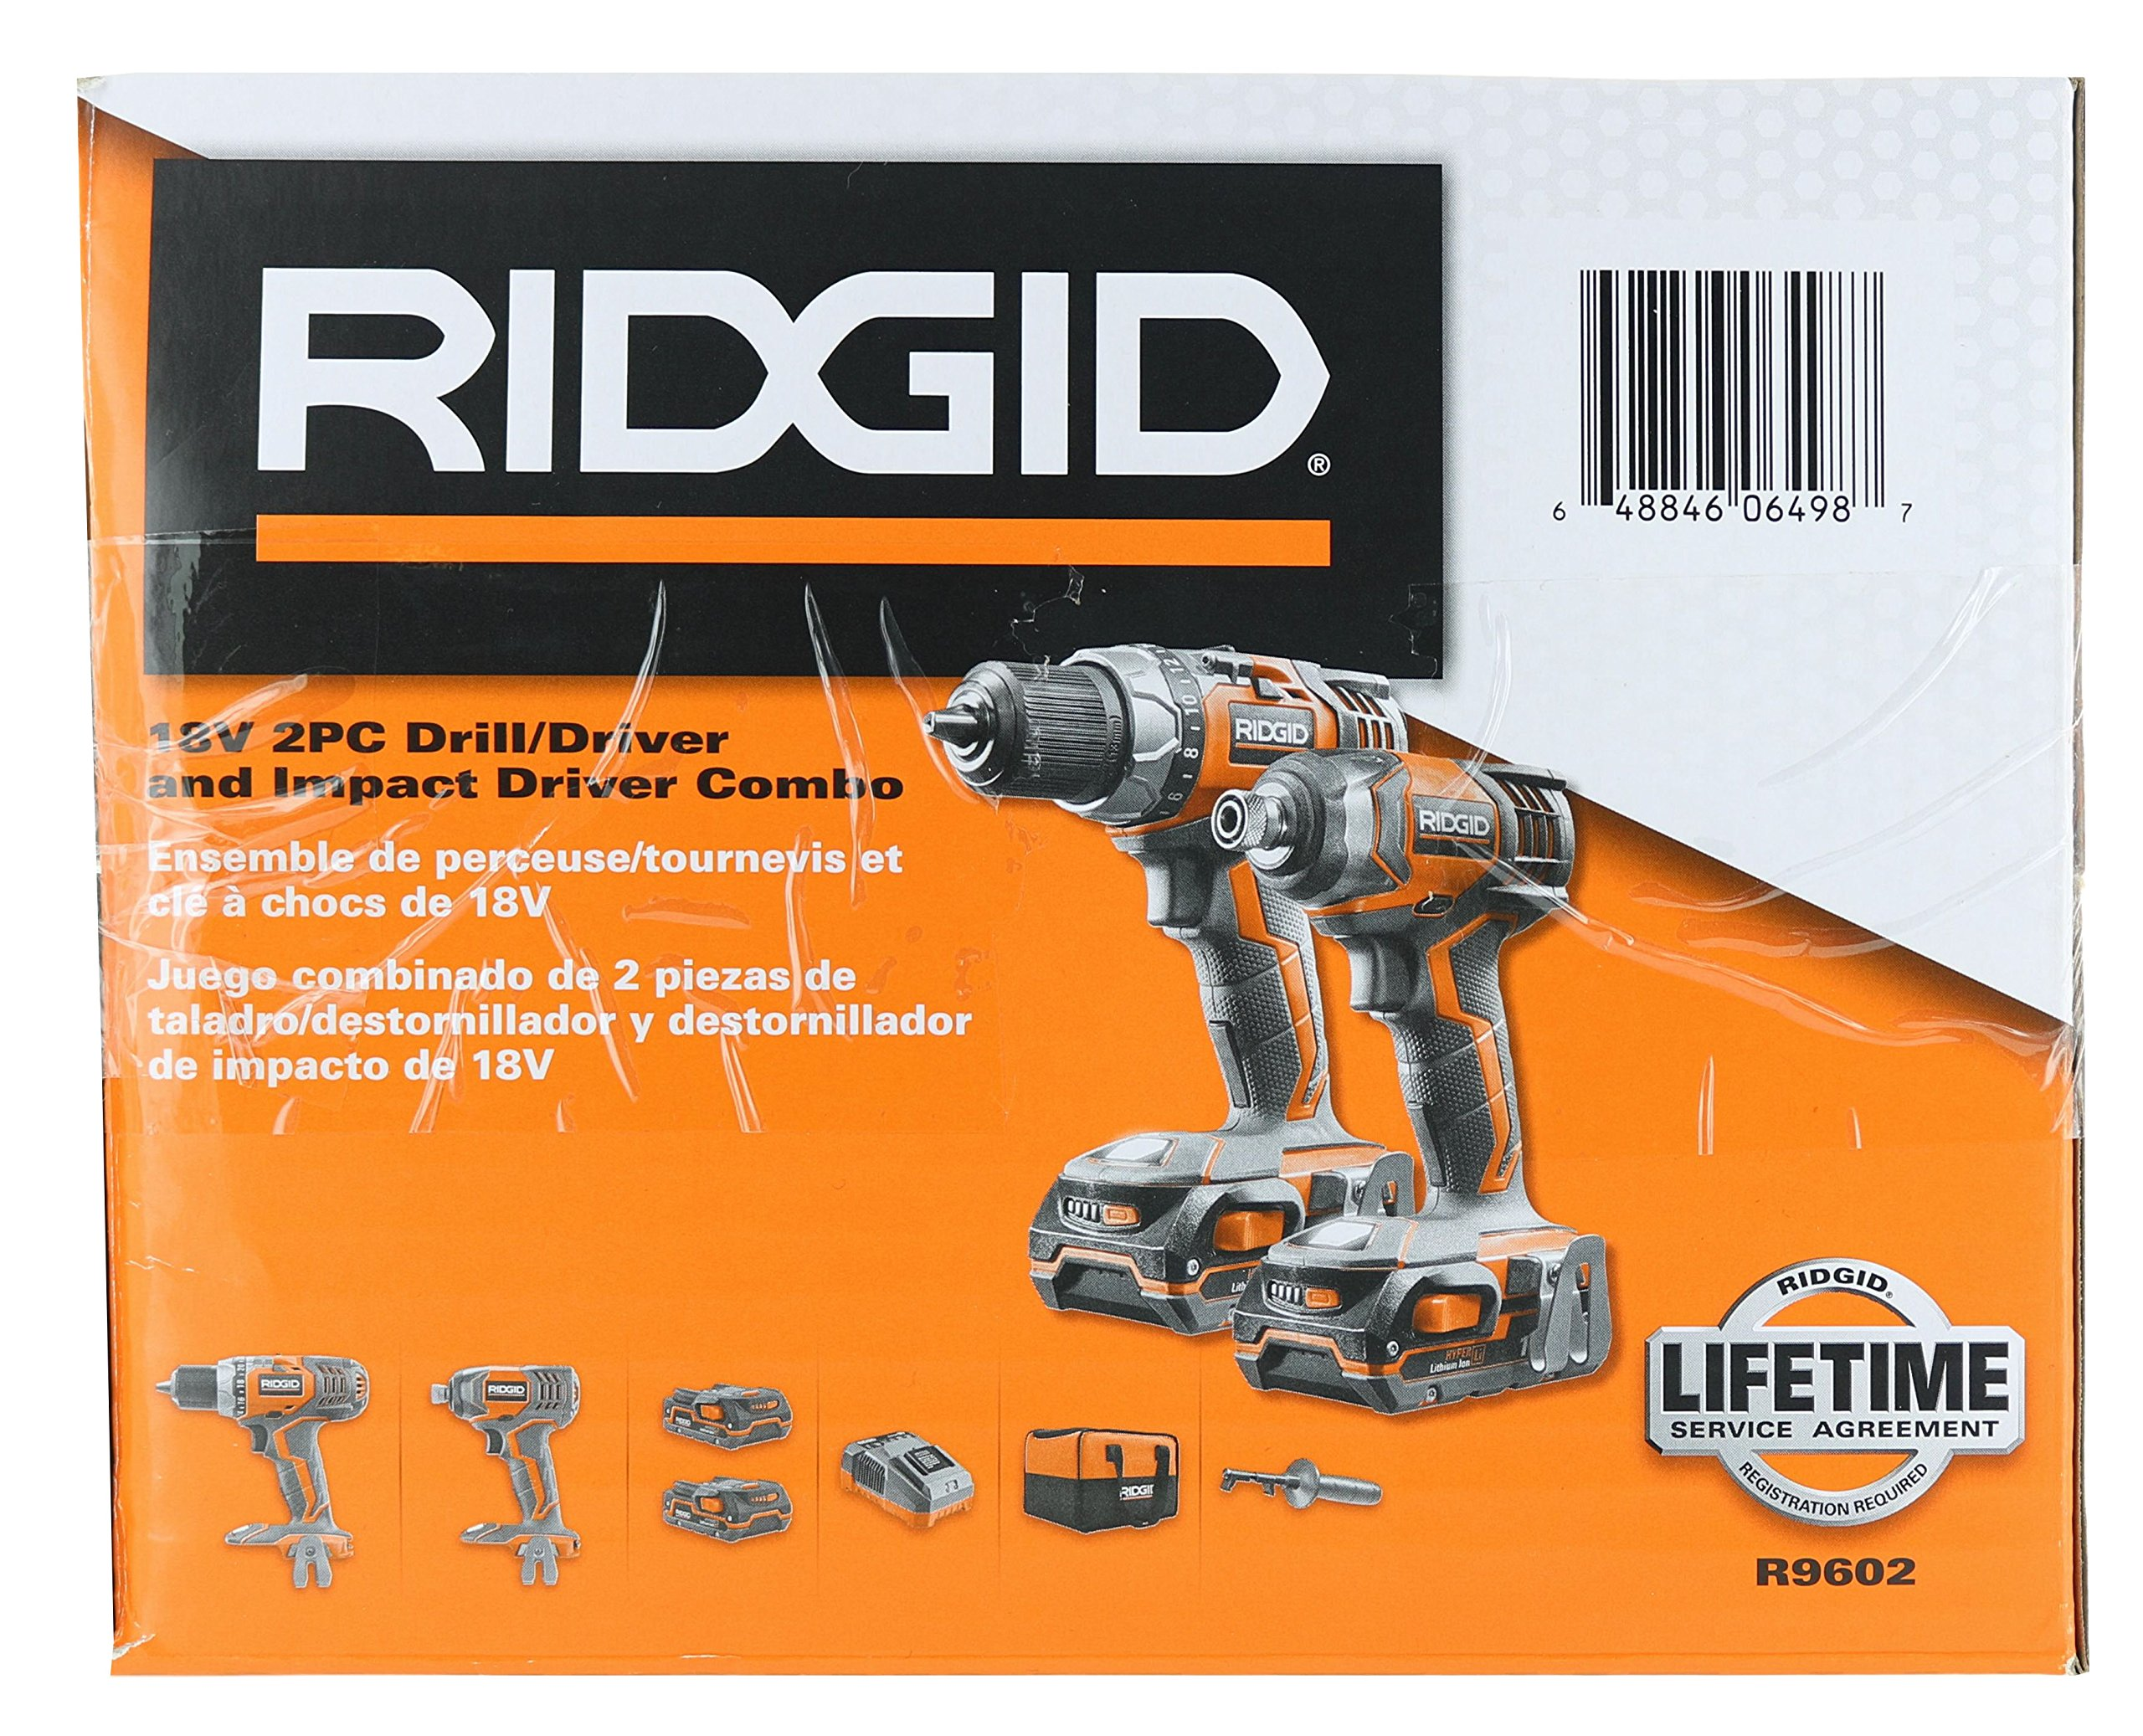 Ridgid X4 R9602 18V Lithium Ion Cordless Drill and Impact Driver Combo Kit with Soft-Sided Tool Case (2 Tools, 2 Compact Batteries, Charger, and Bag Included) by Rigid (Image #8)